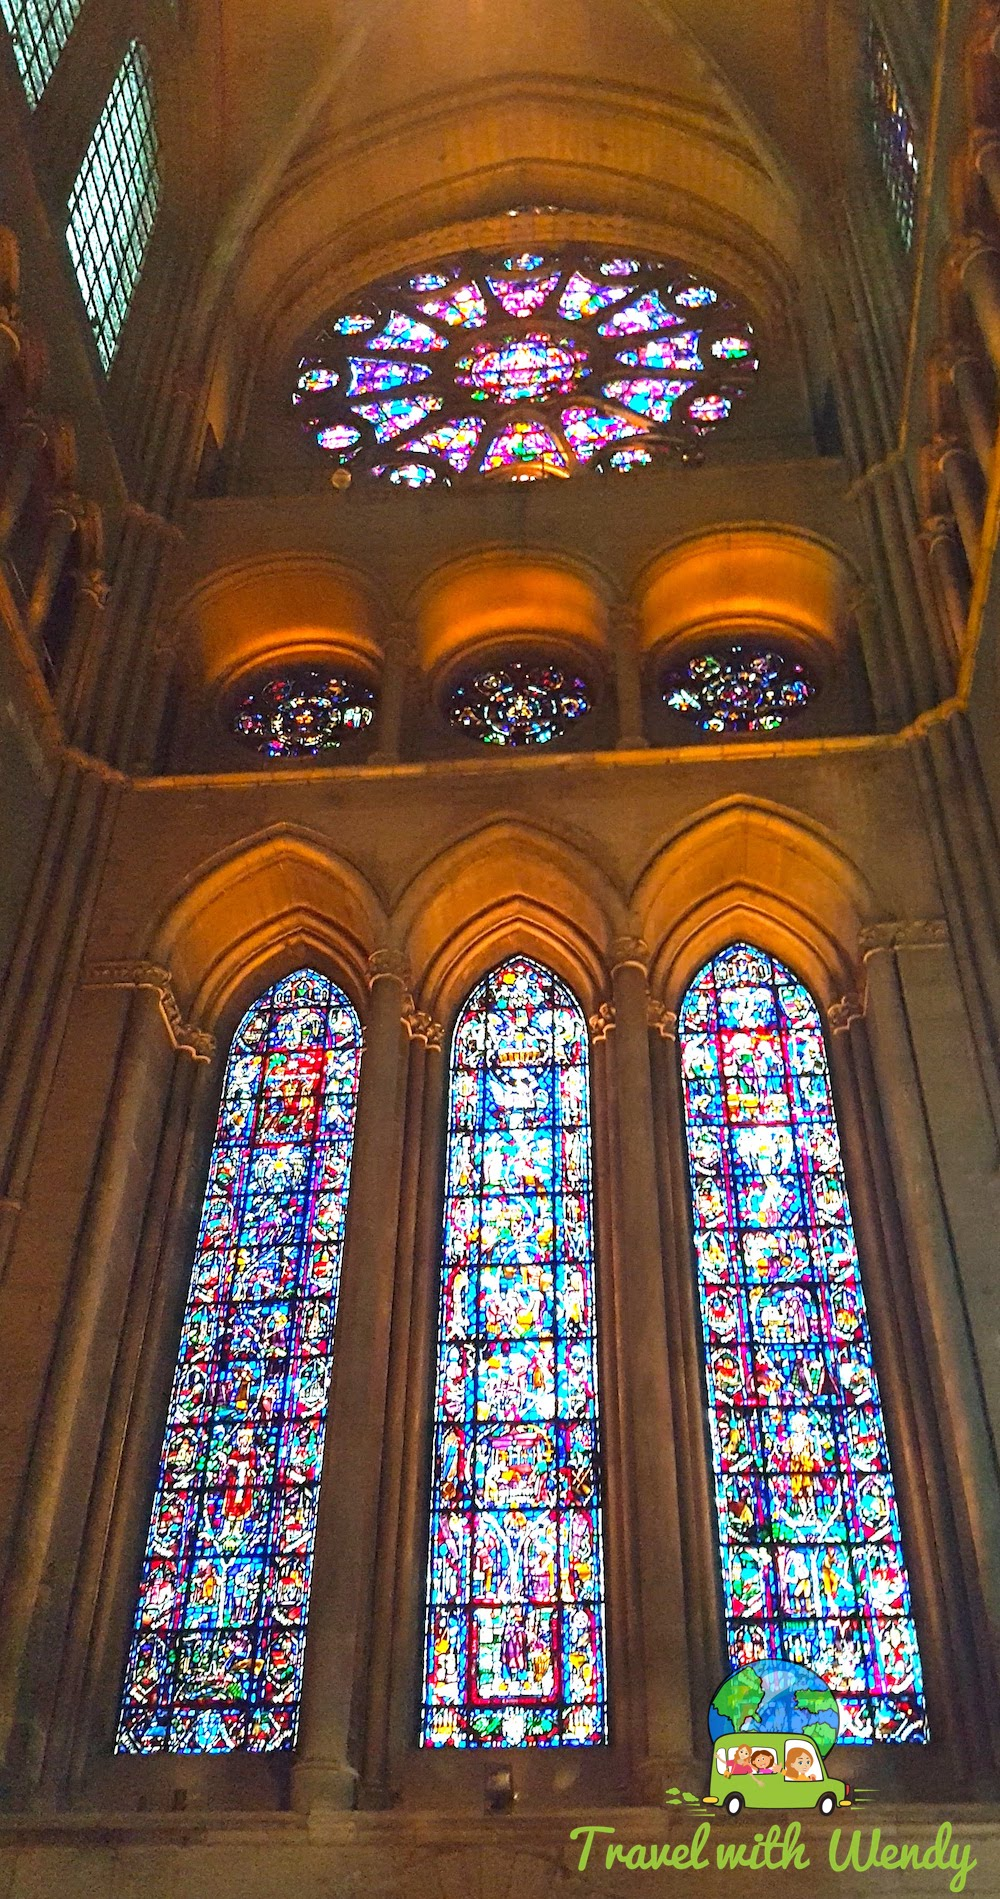 Beautiful stain glass throughout the cathedral